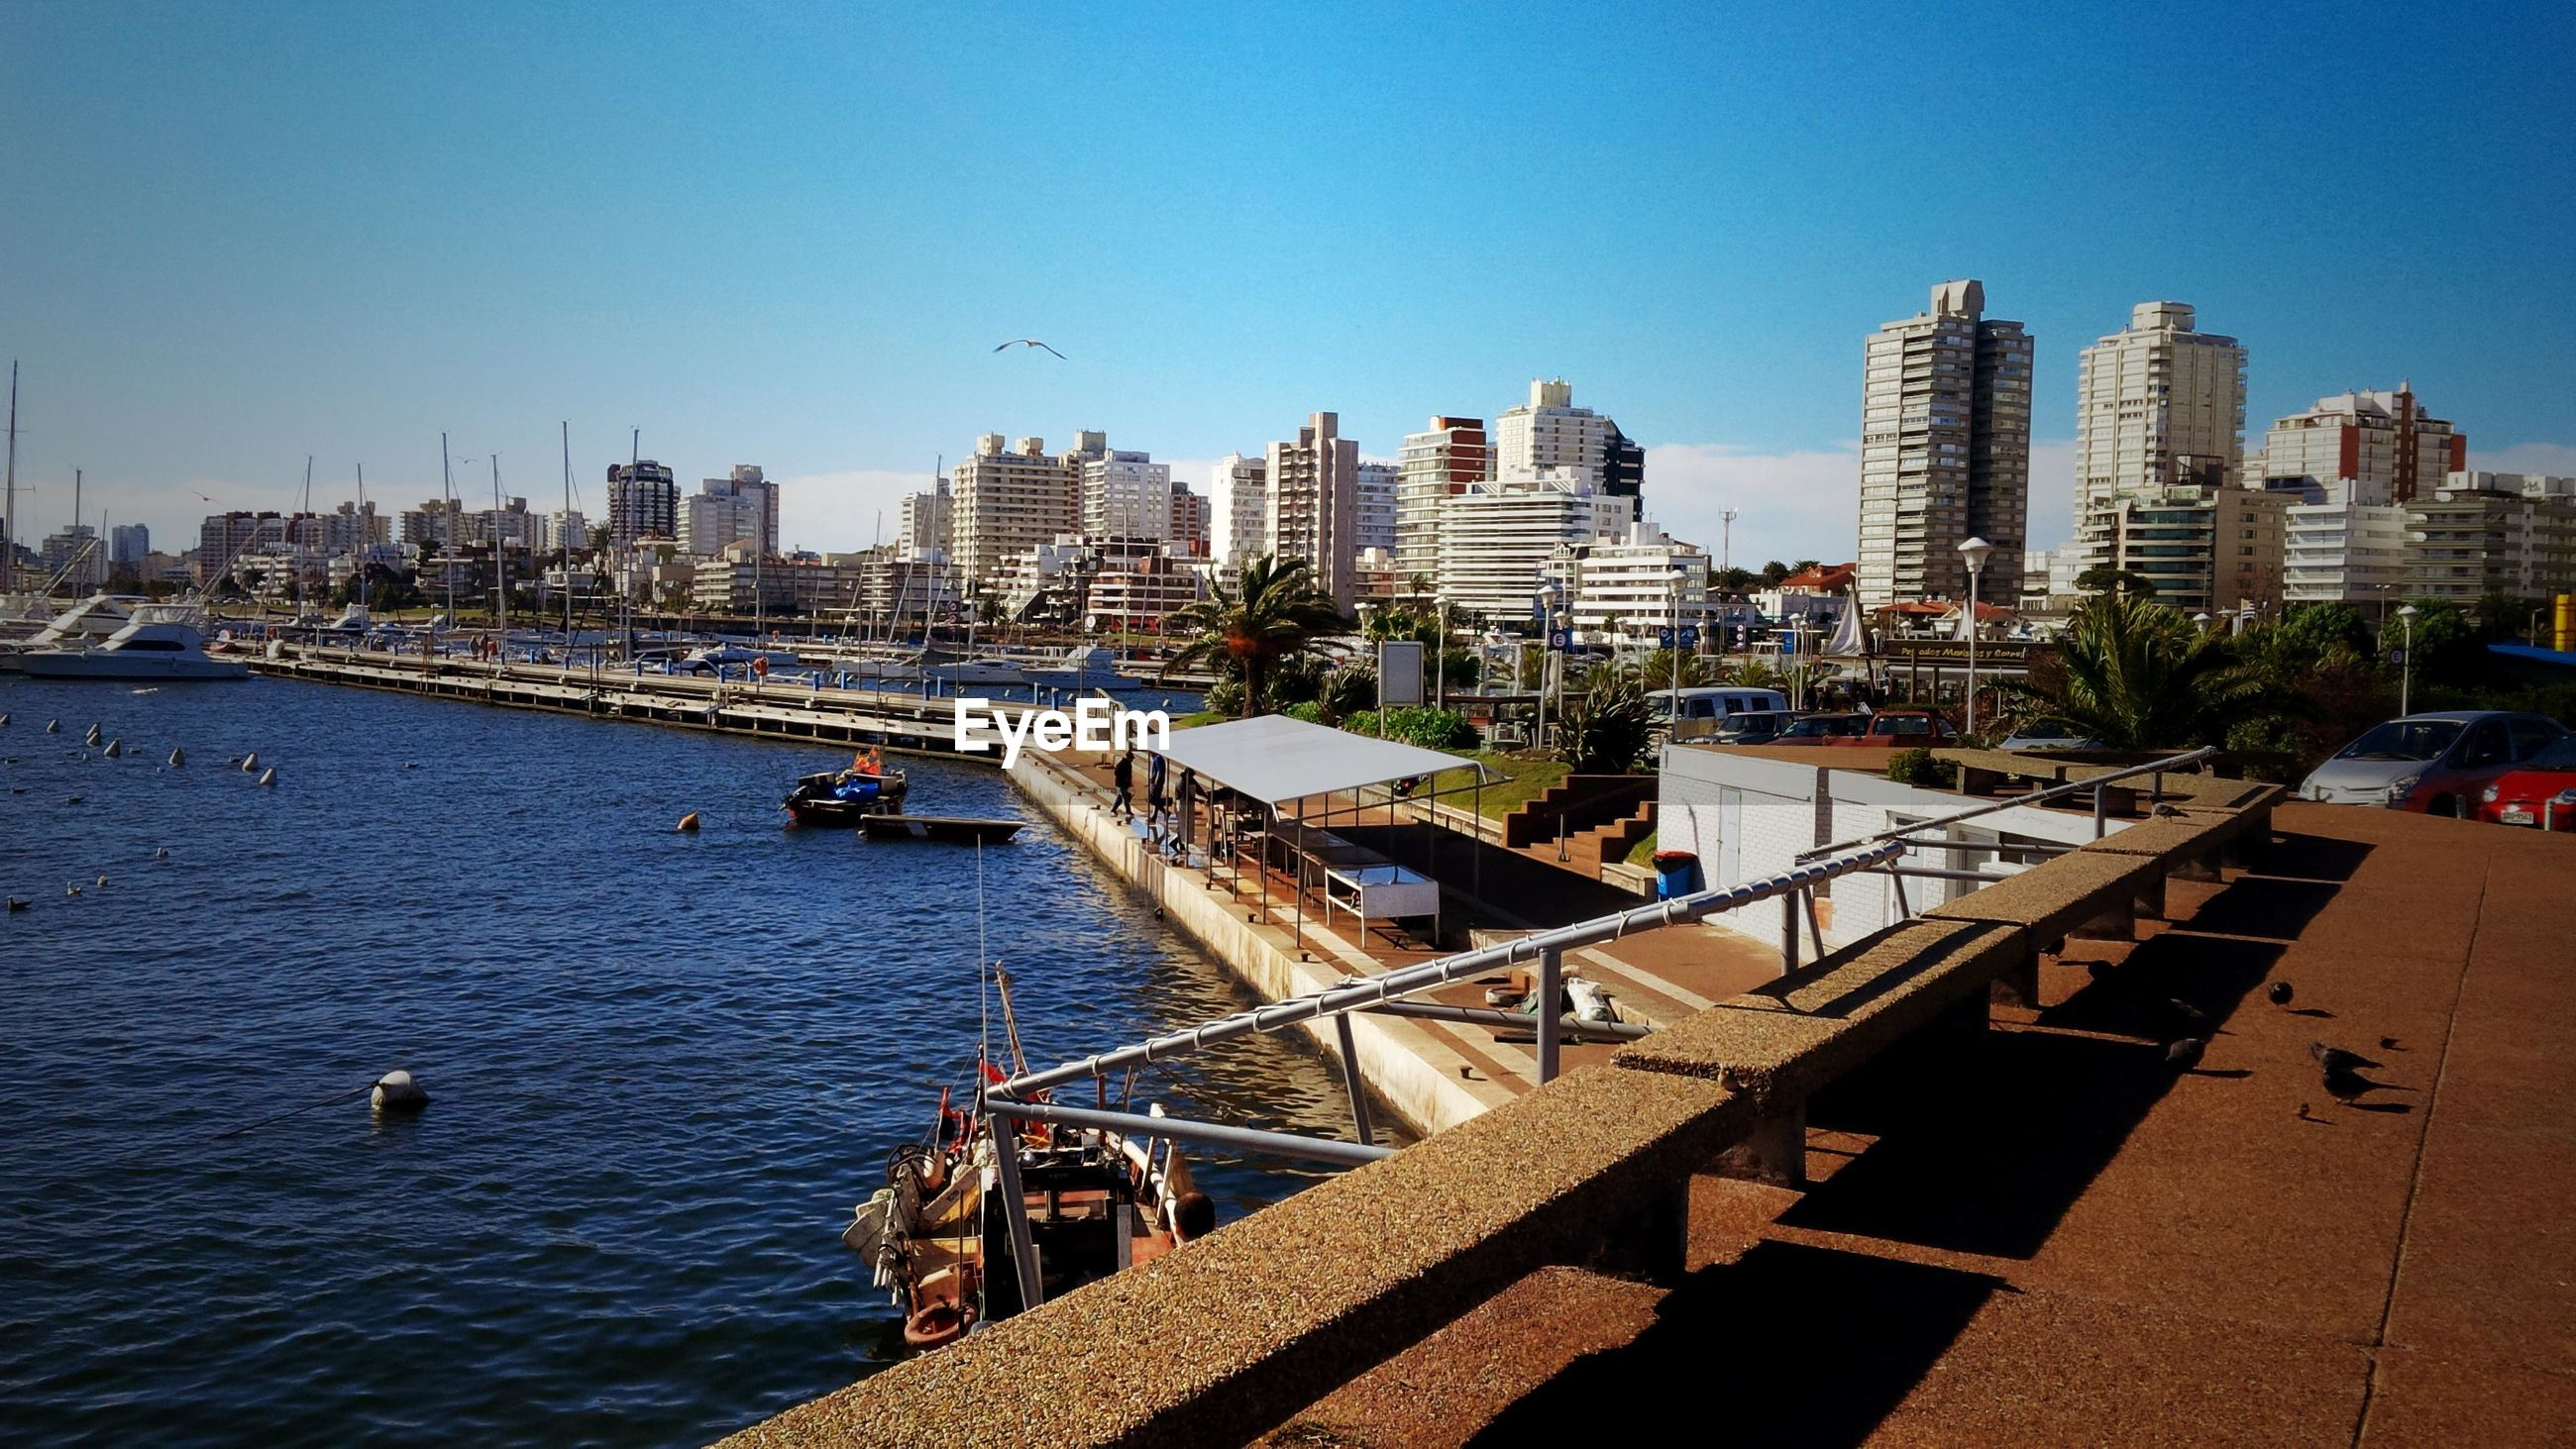 architecture, built structure, building exterior, city, skyscraper, day, clear sky, outdoors, cityscape, water, transportation, blue, travel destinations, nautical vessel, sunlight, sky, no people, sea, urban skyline, nature